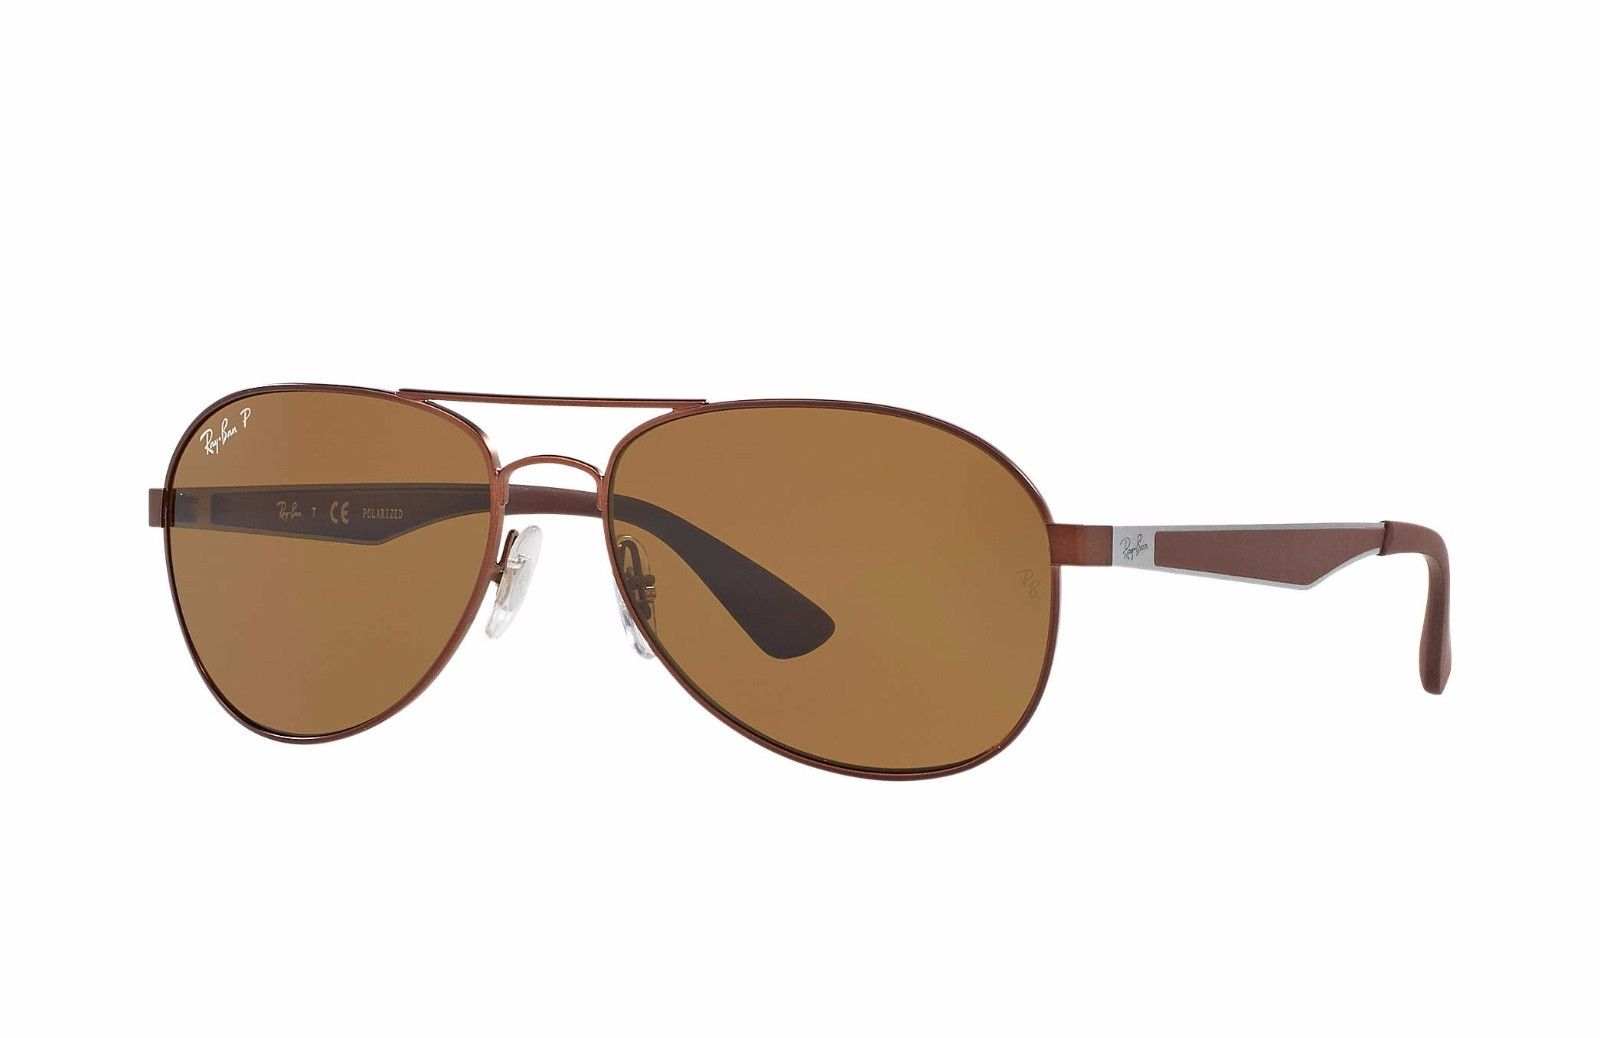 Ray-Ban Polarized Brown Sunglasses (RB3549 012/83 58mm)